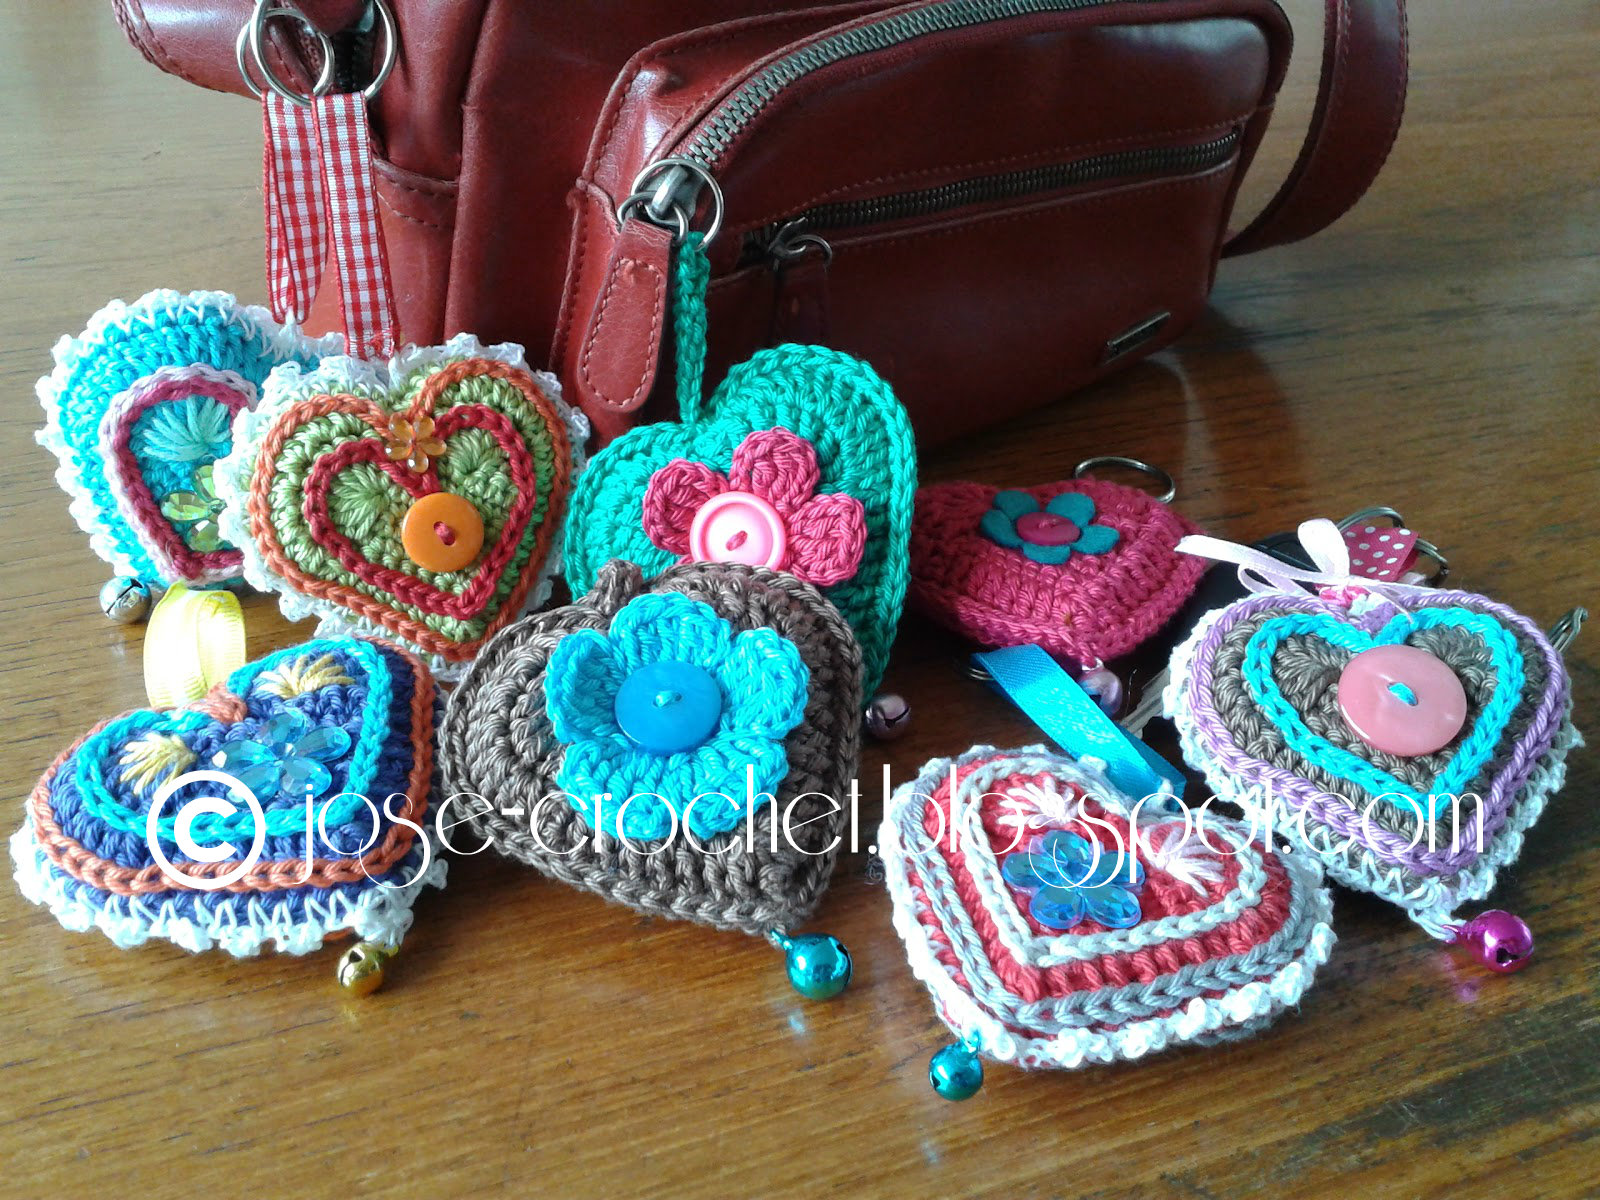 Crochet Pattern Heart : Jose Crochet: Free crochet pattern heart